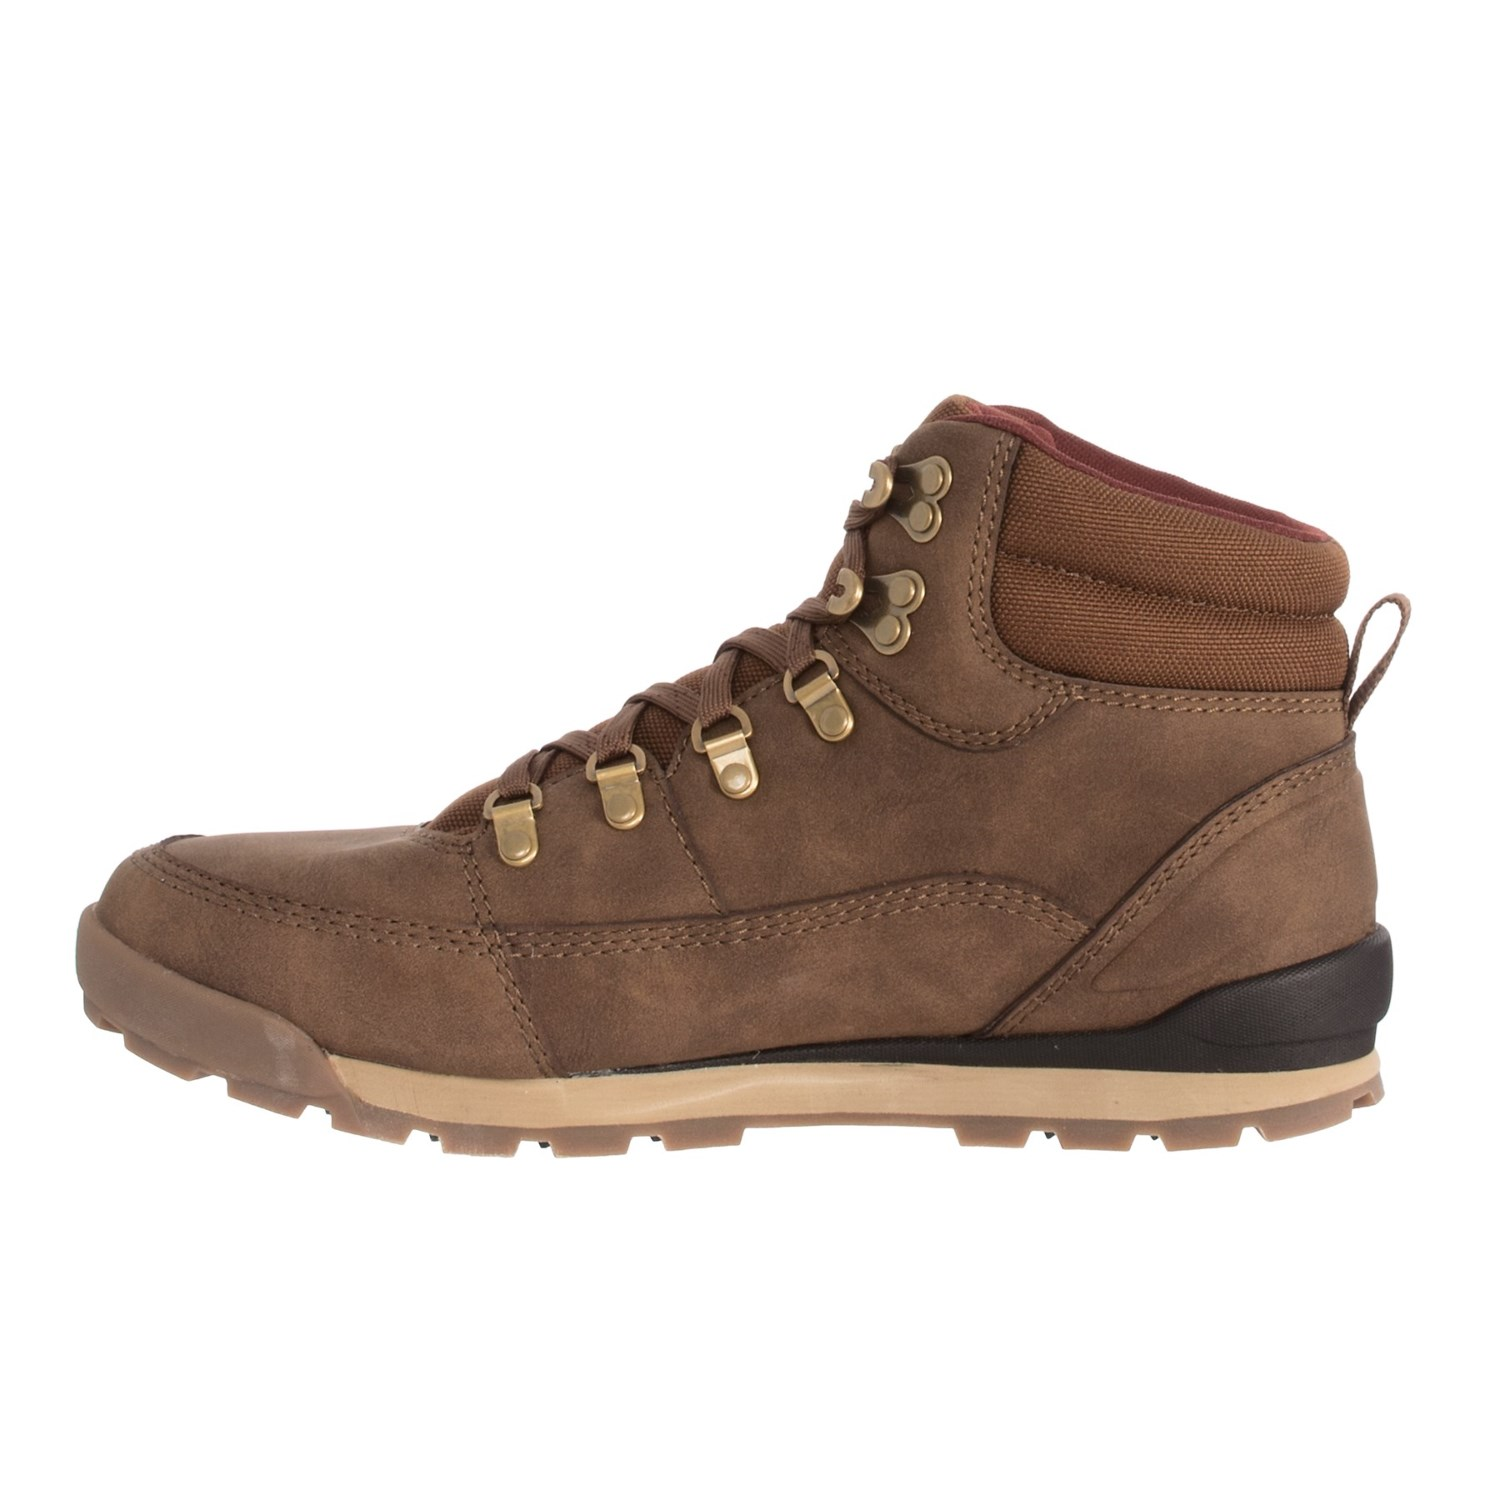 8eb11a23225 Eastland Canyon Hiking Boots (For Men)